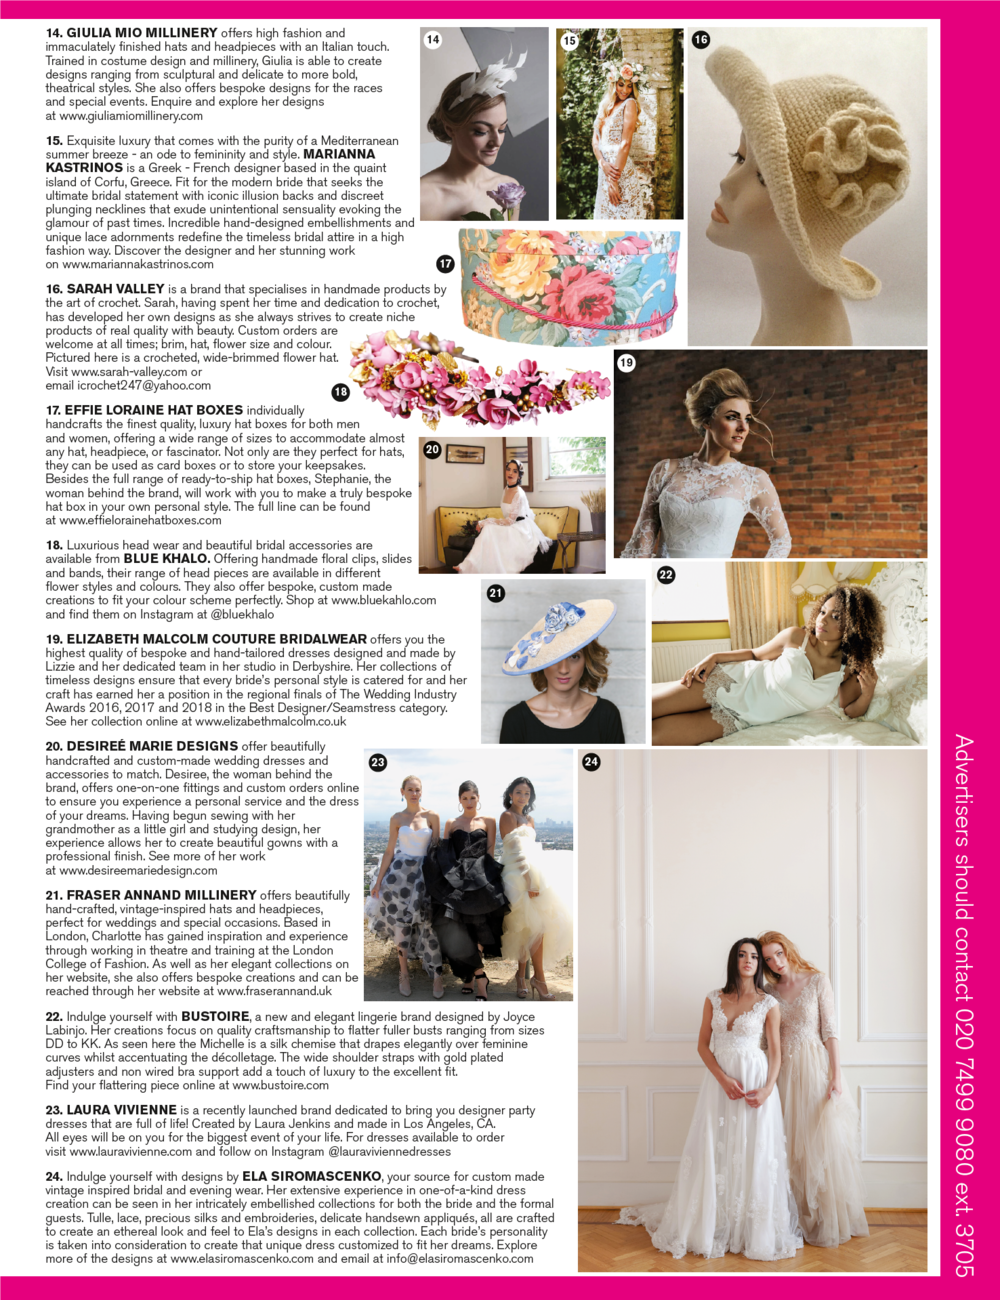 Current Issue January/February 2019 Issue of BRIDES UK page 225 suggestion #20 featuring my Ellie gown